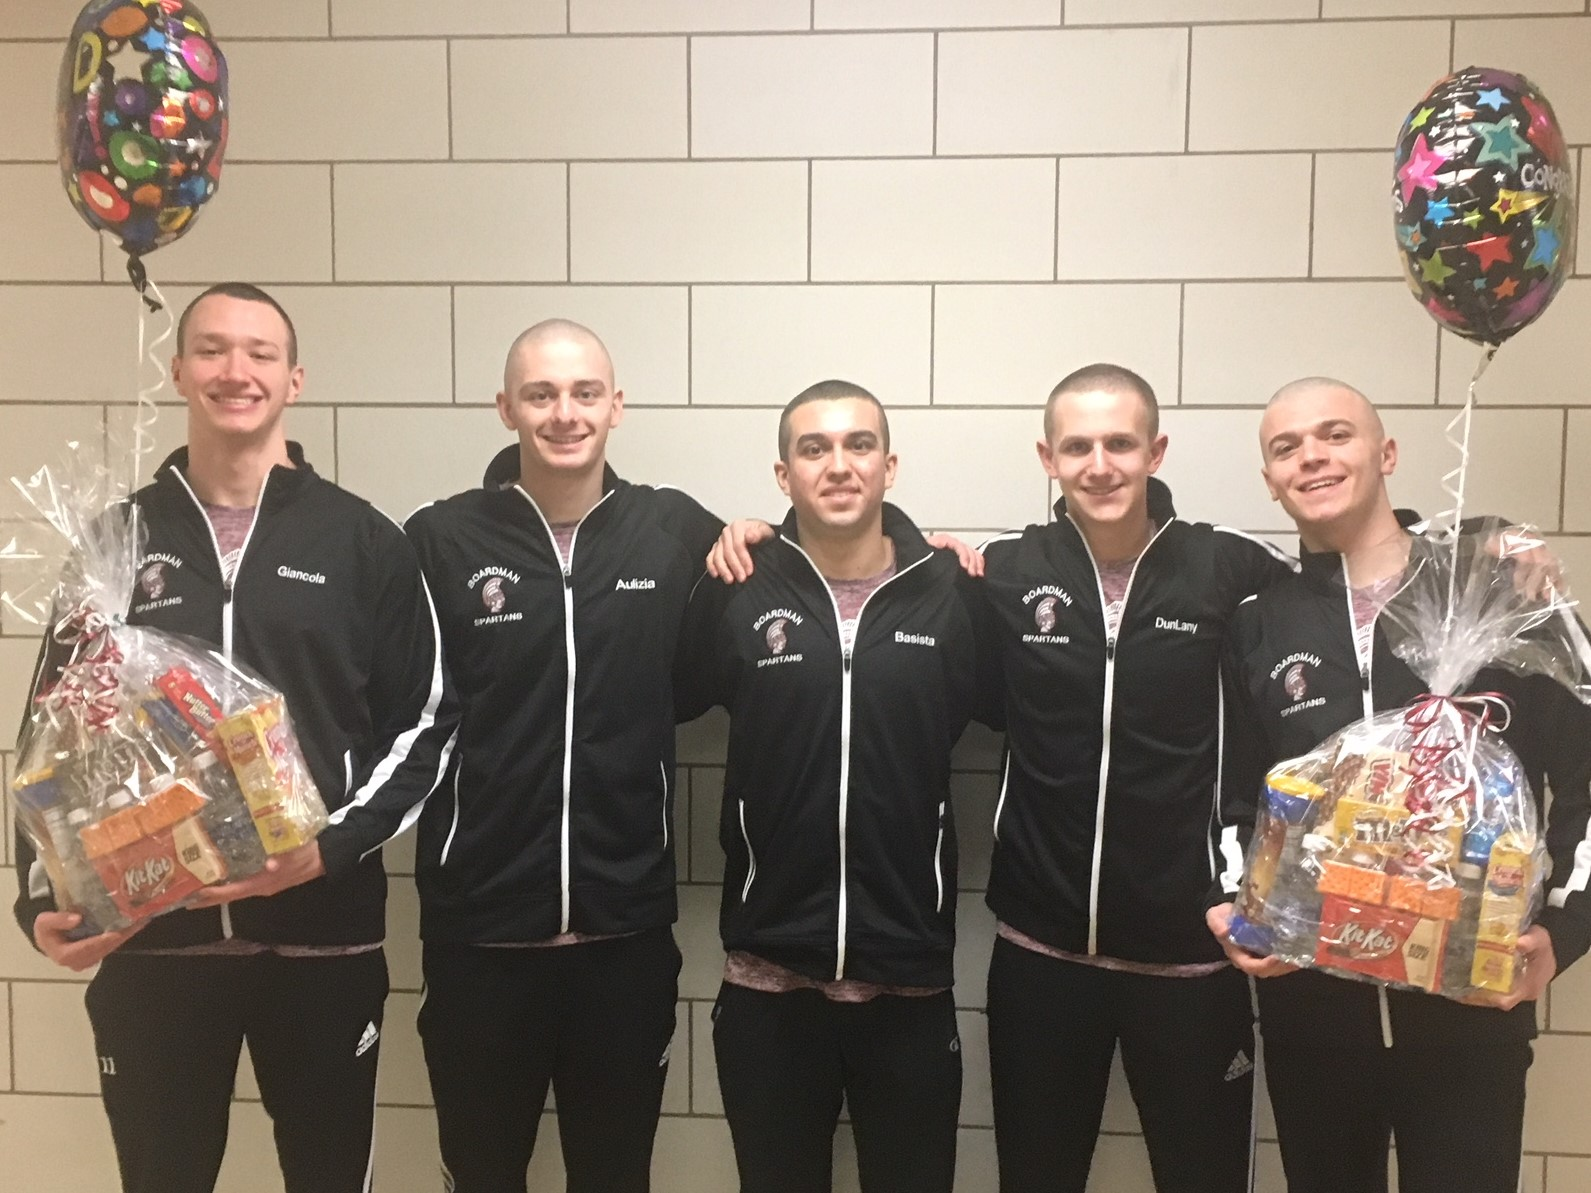 Swimmers headed to State Championships with gift baskets and balloons